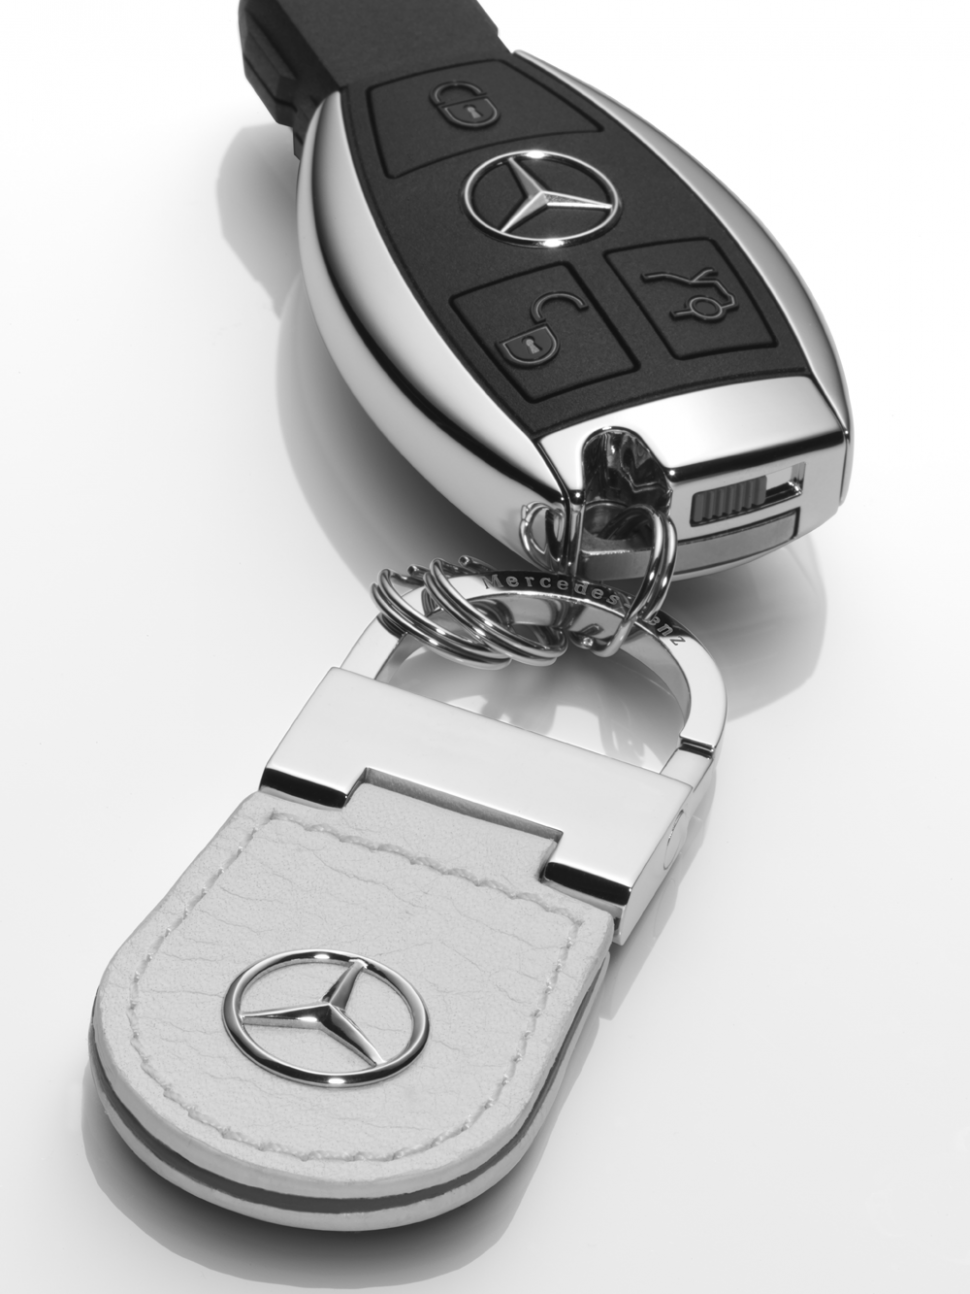 Mercedes benz key ring keyrings beijing white leather for Mercedes benz usa customer service phone number